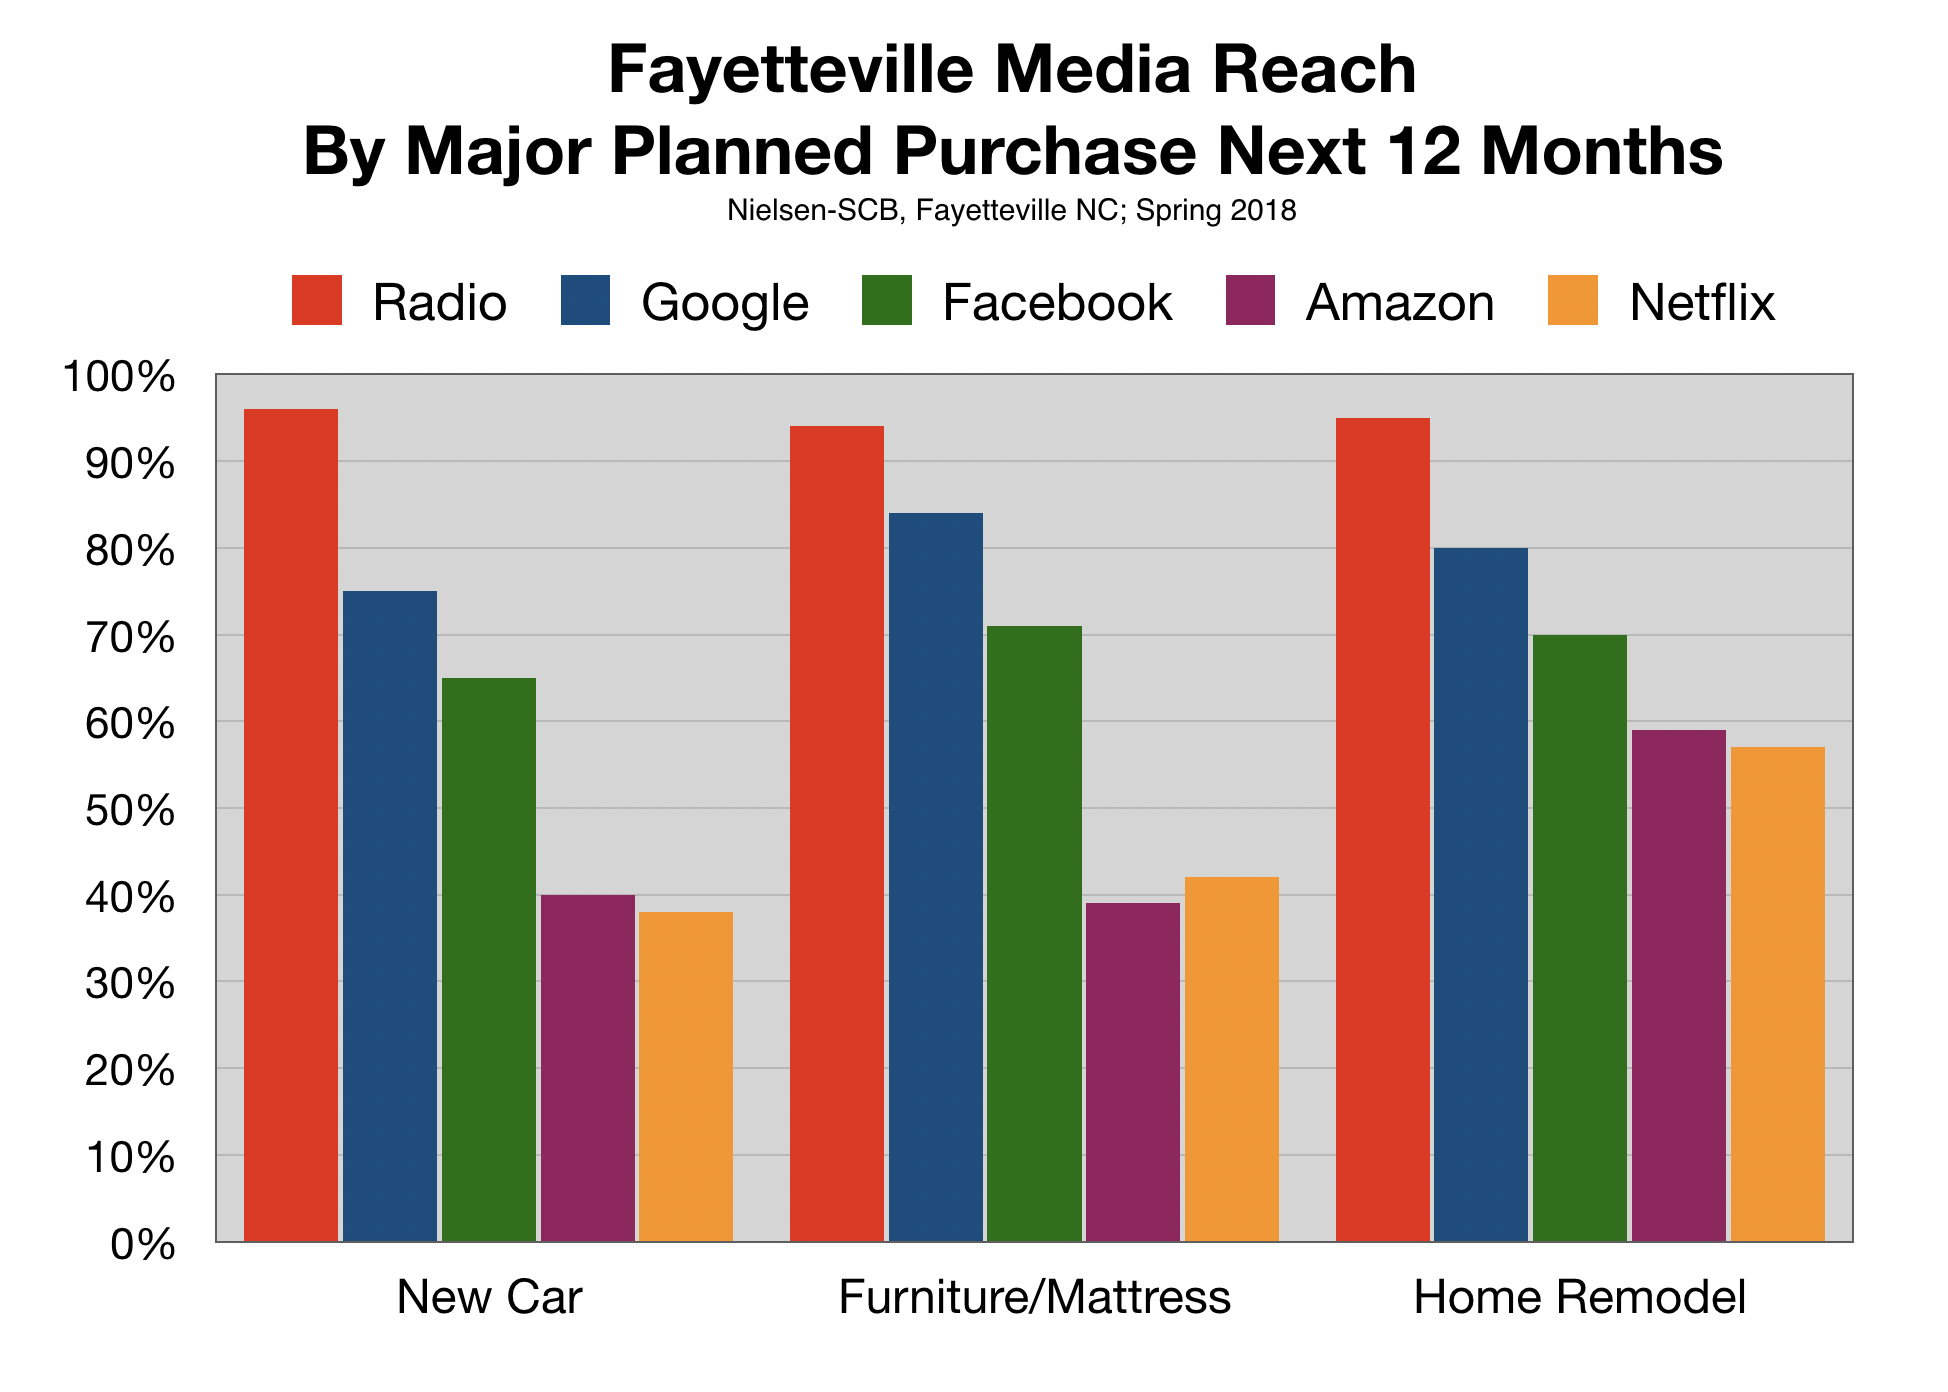 Should I advertise on the Internet To Reach Fayetteville consumers